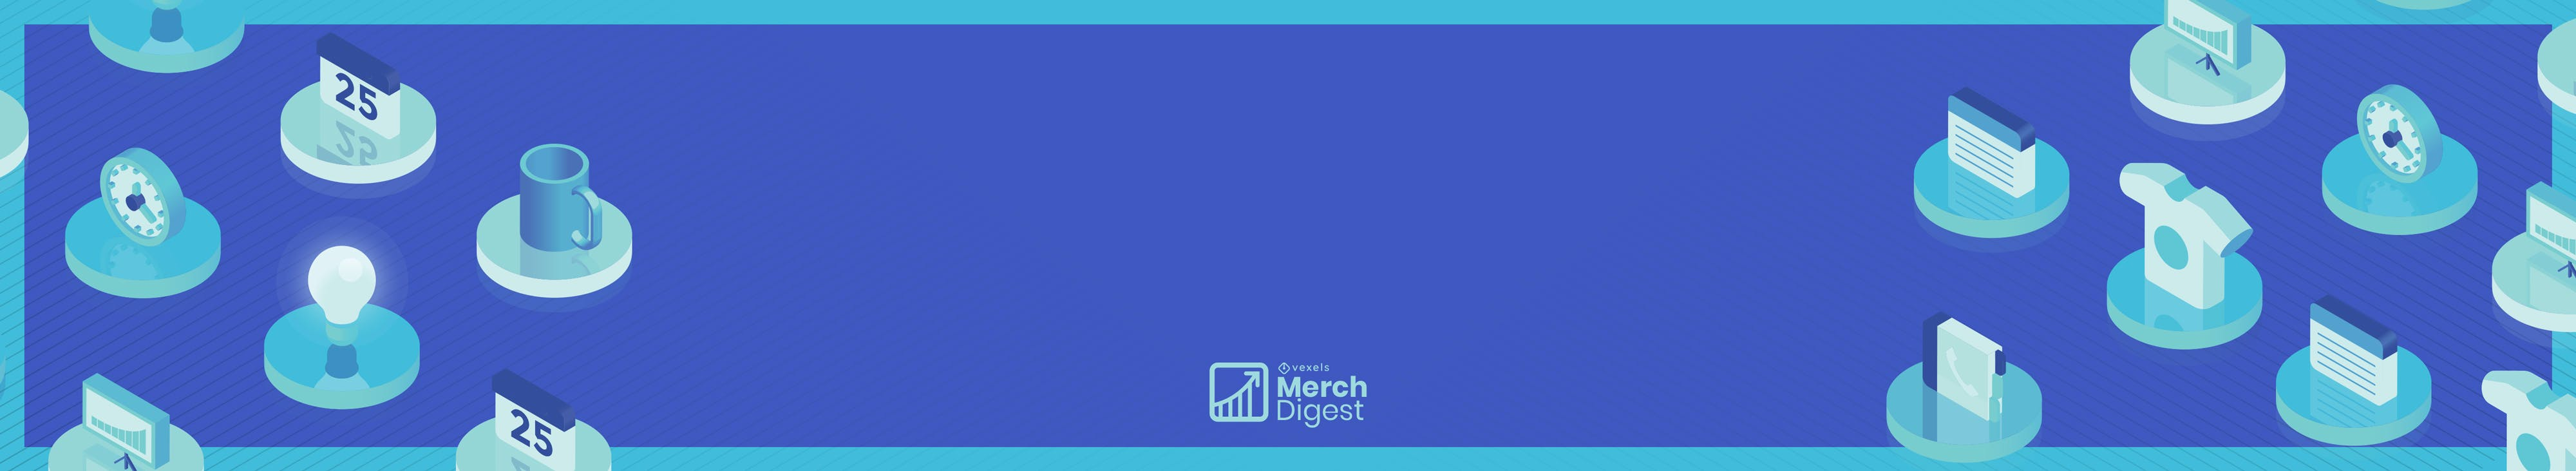 Background with merch elements you can find in a Merch Digest